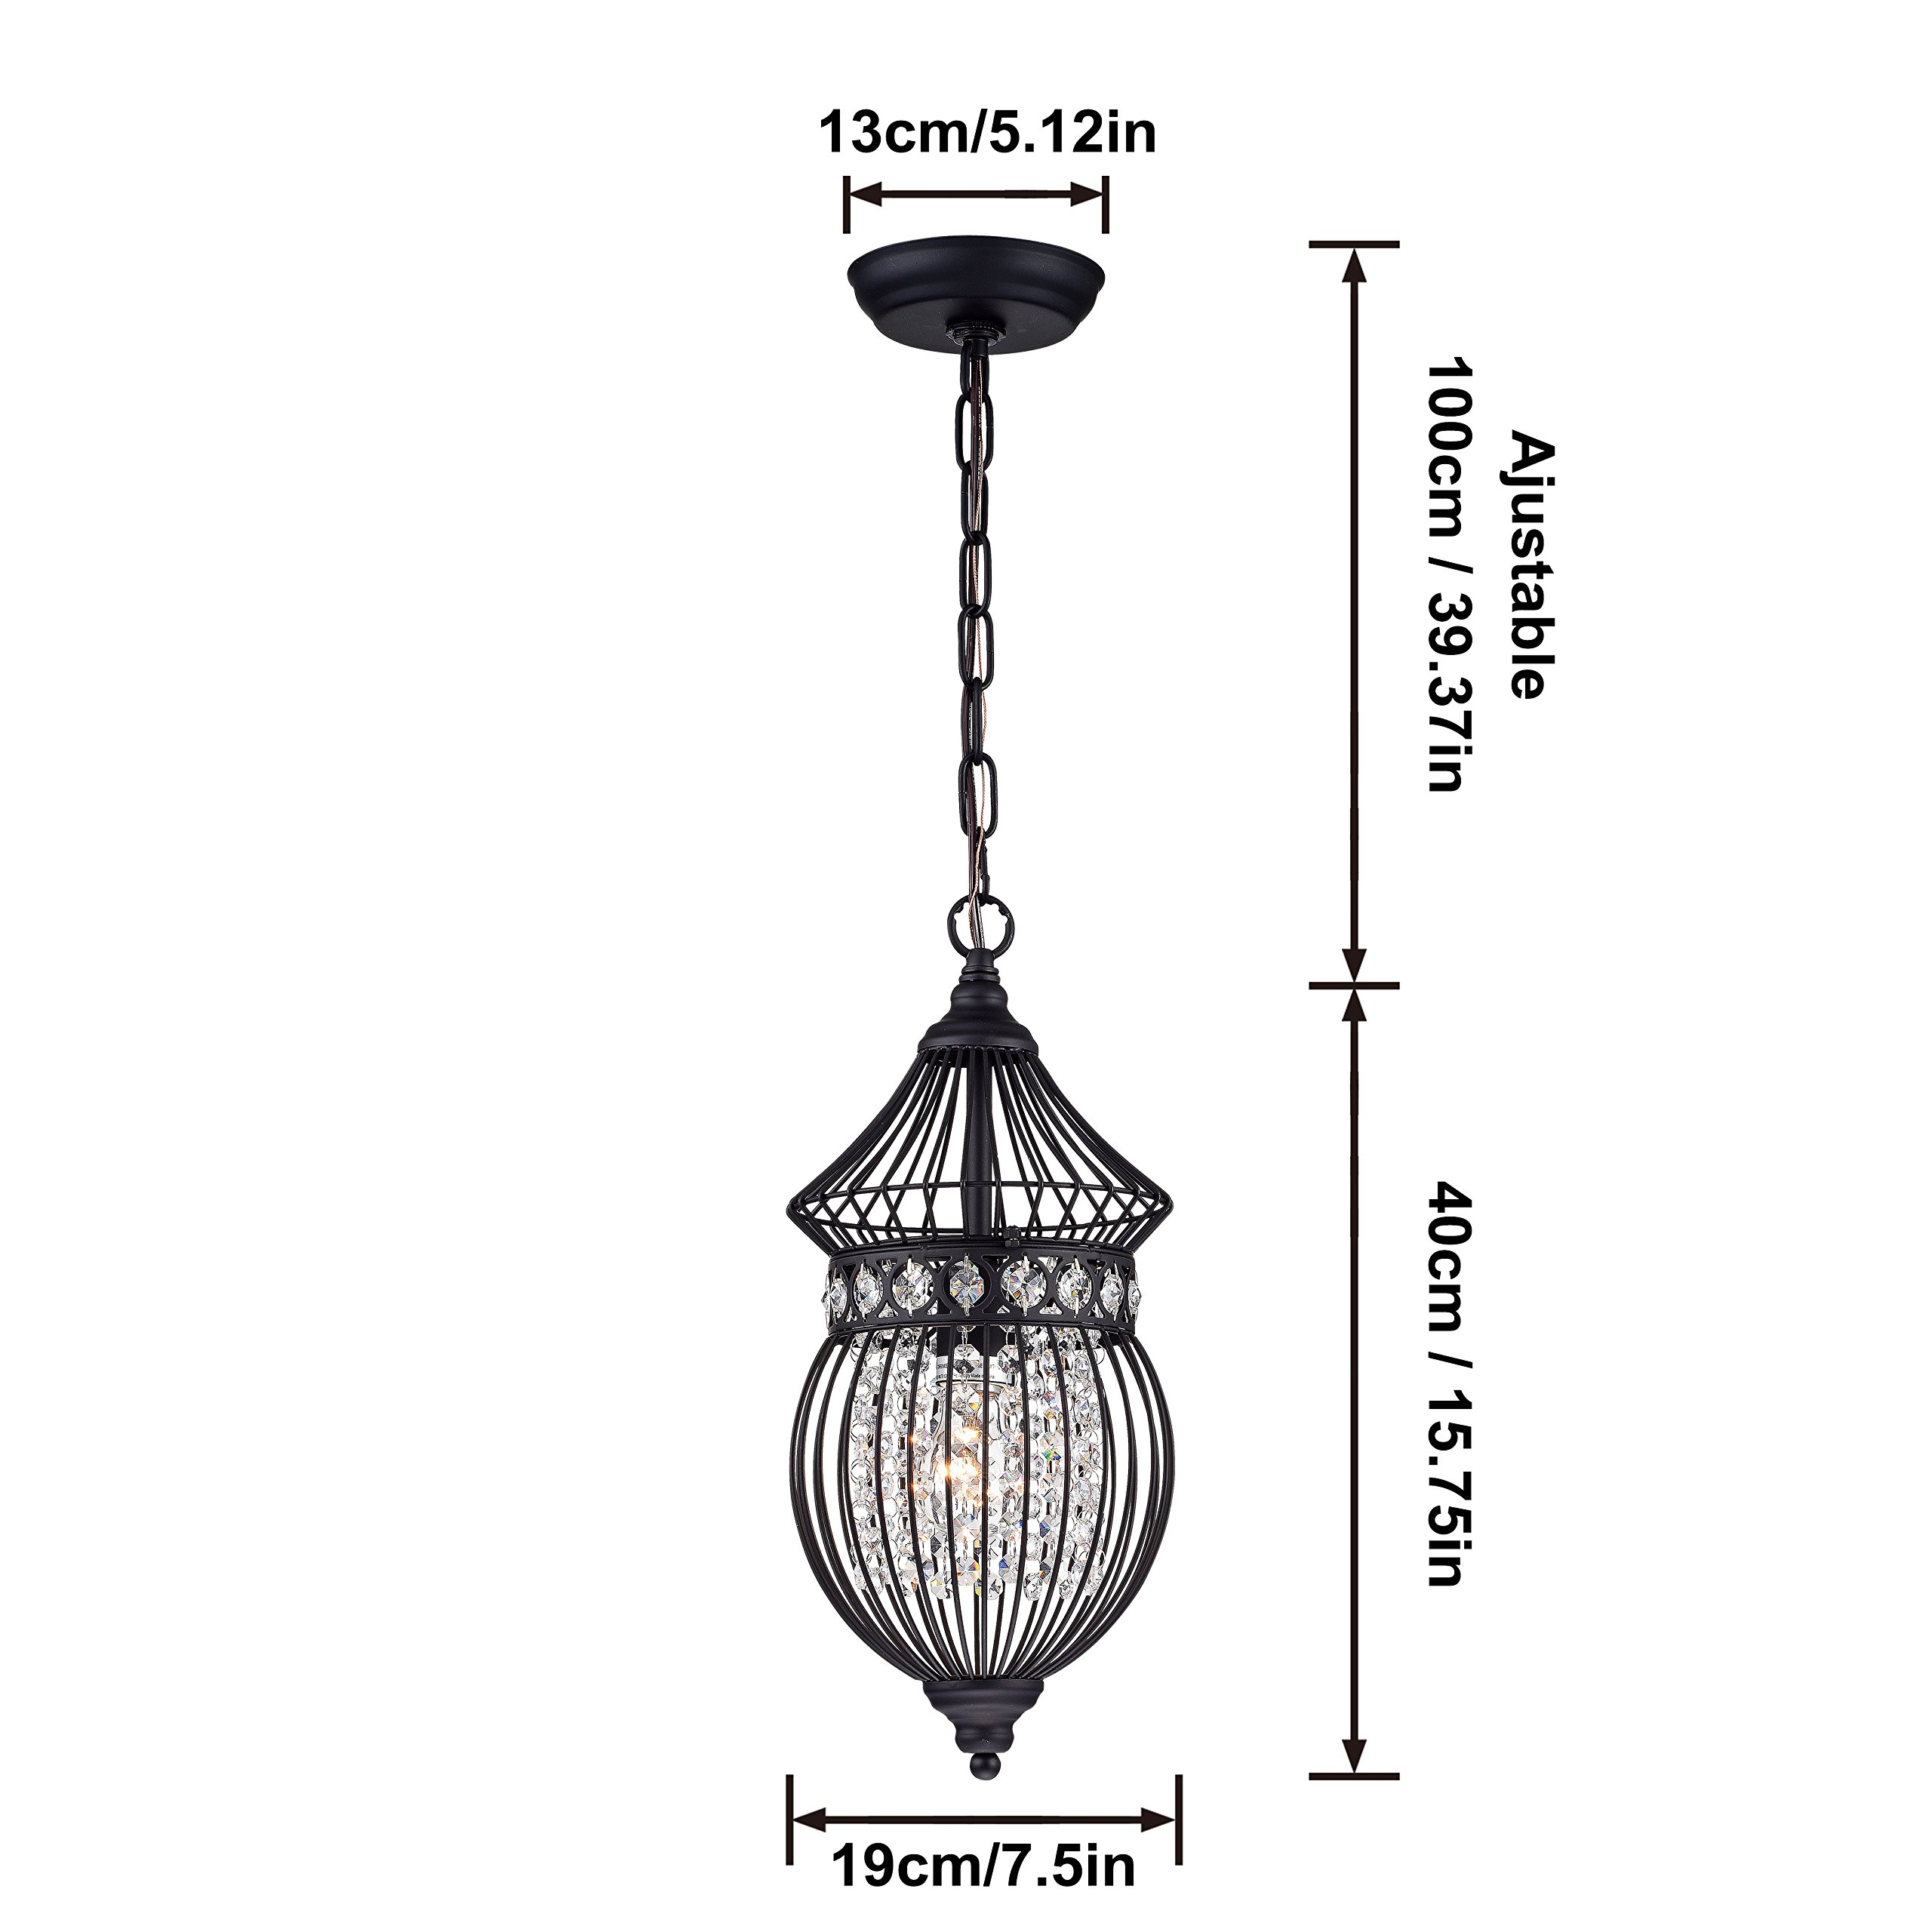 Black Chandeliers Crystal Chandelier Lighting Farmhouse Lighting Fixtures 1 Light 17045 by LaLuLa (Image #6)